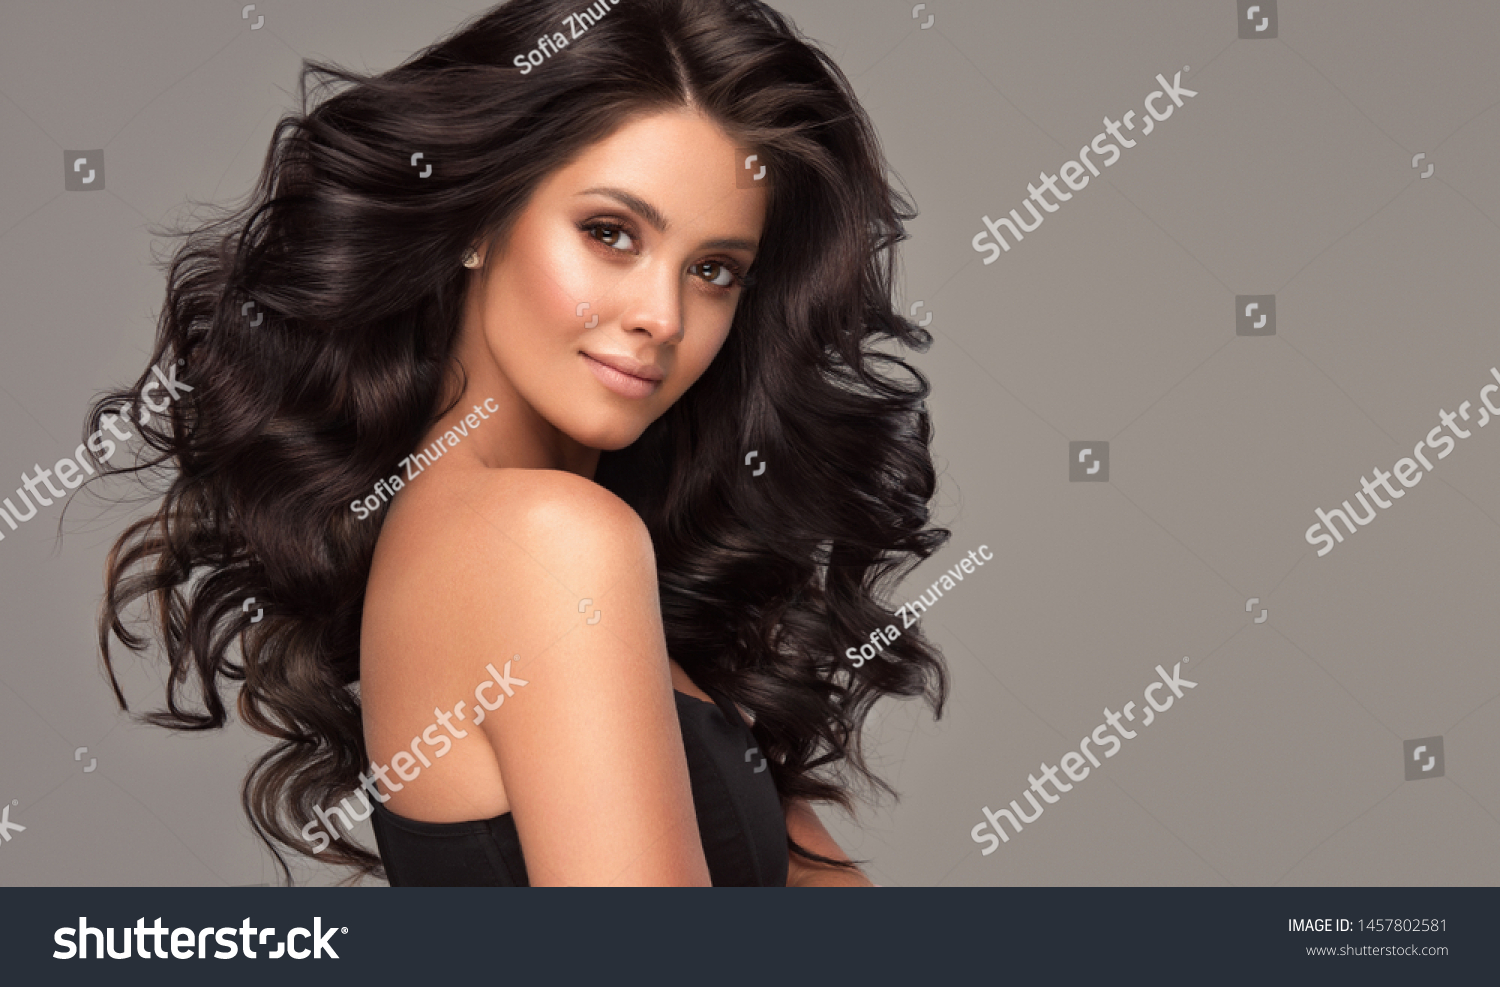 Beauty brunette girl with long  and   shiny wavy black hair .  Beautiful   woman model with curly hairstyle . #1457802581